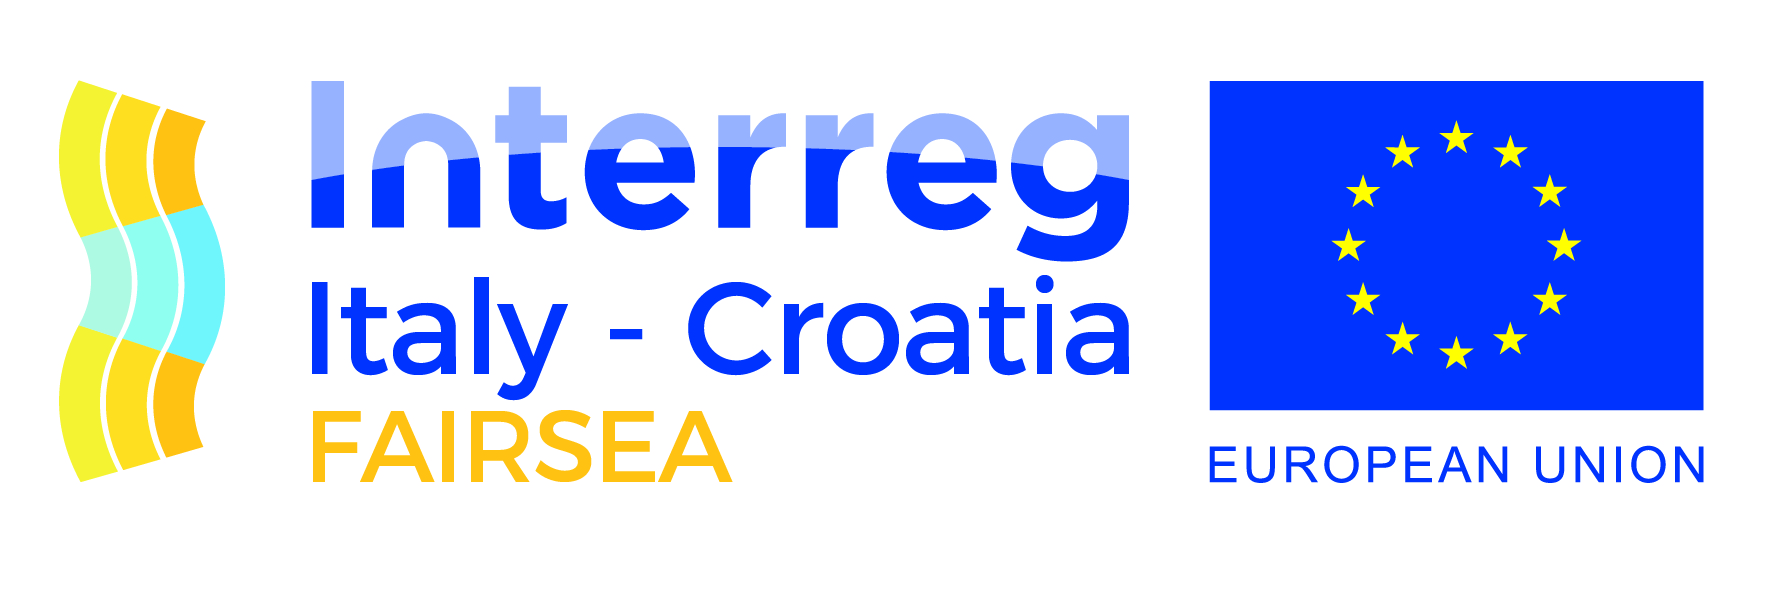 FAIRSEA – Fisheries in the AdriatIc Region – a Shared Ecosystem Approach